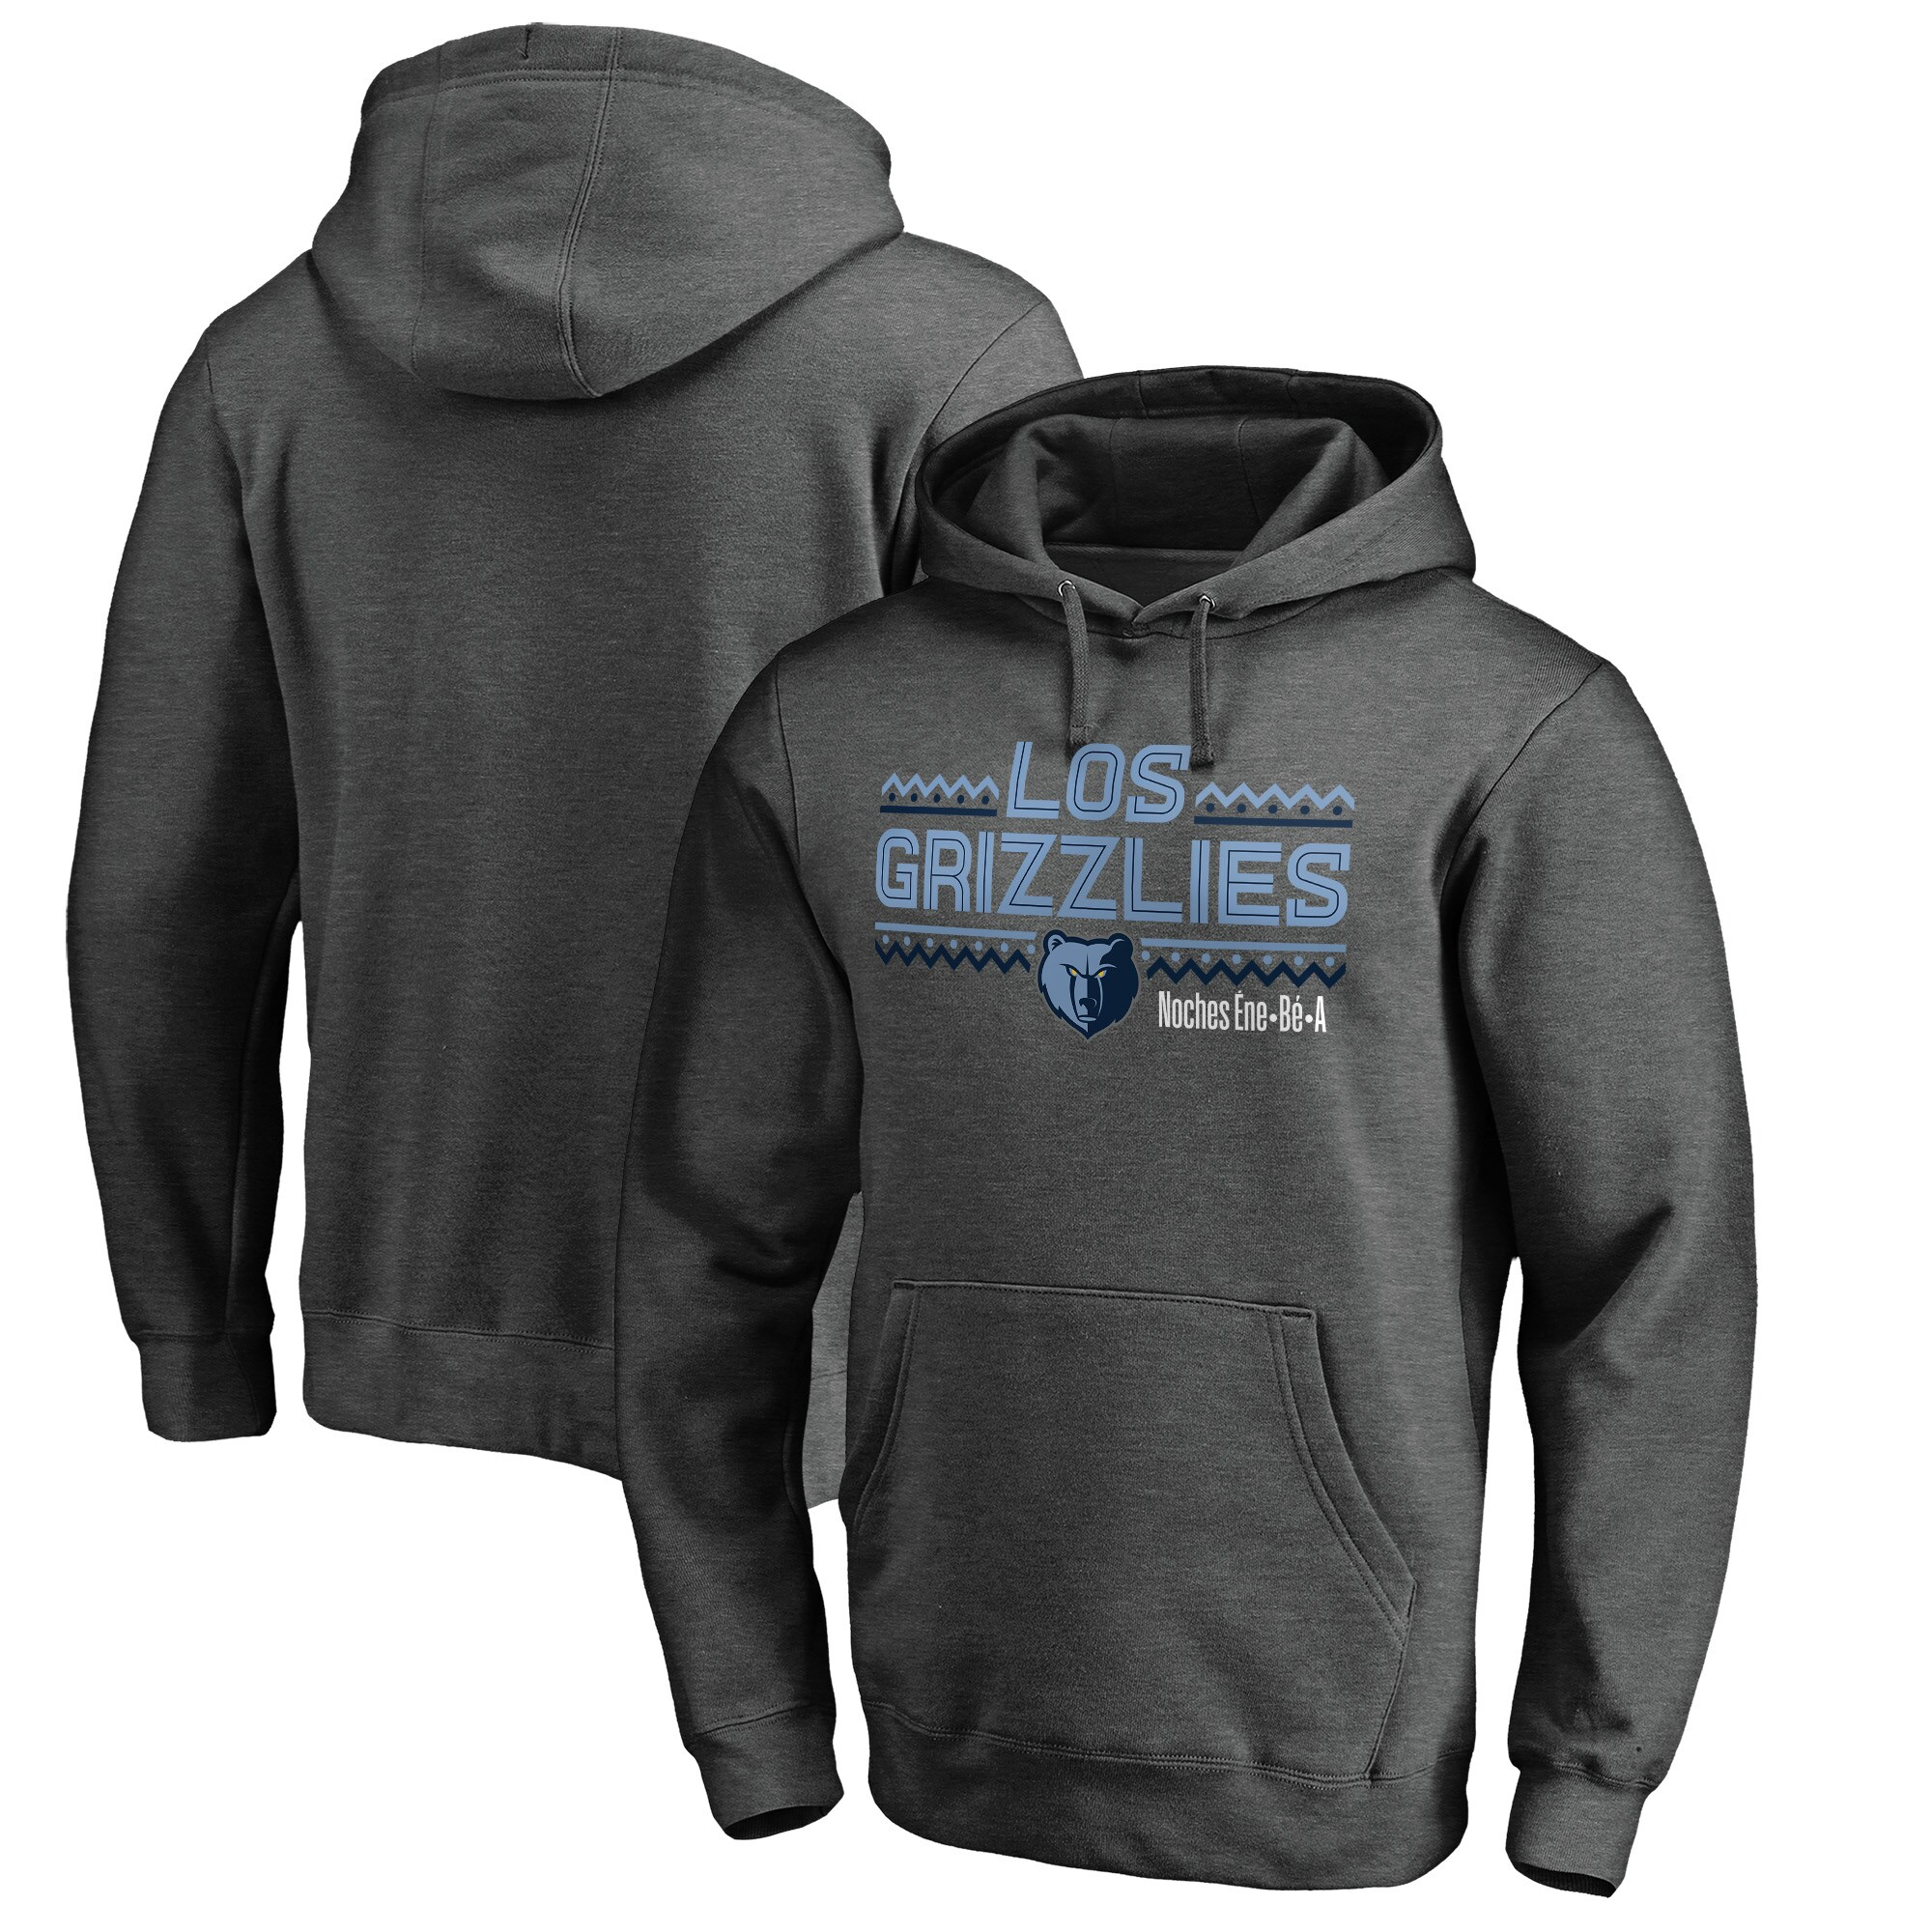 Memphis Grizzlies Fanatics Branded Noches Ene-Be-A Pullover Hoodie - Heather Gray